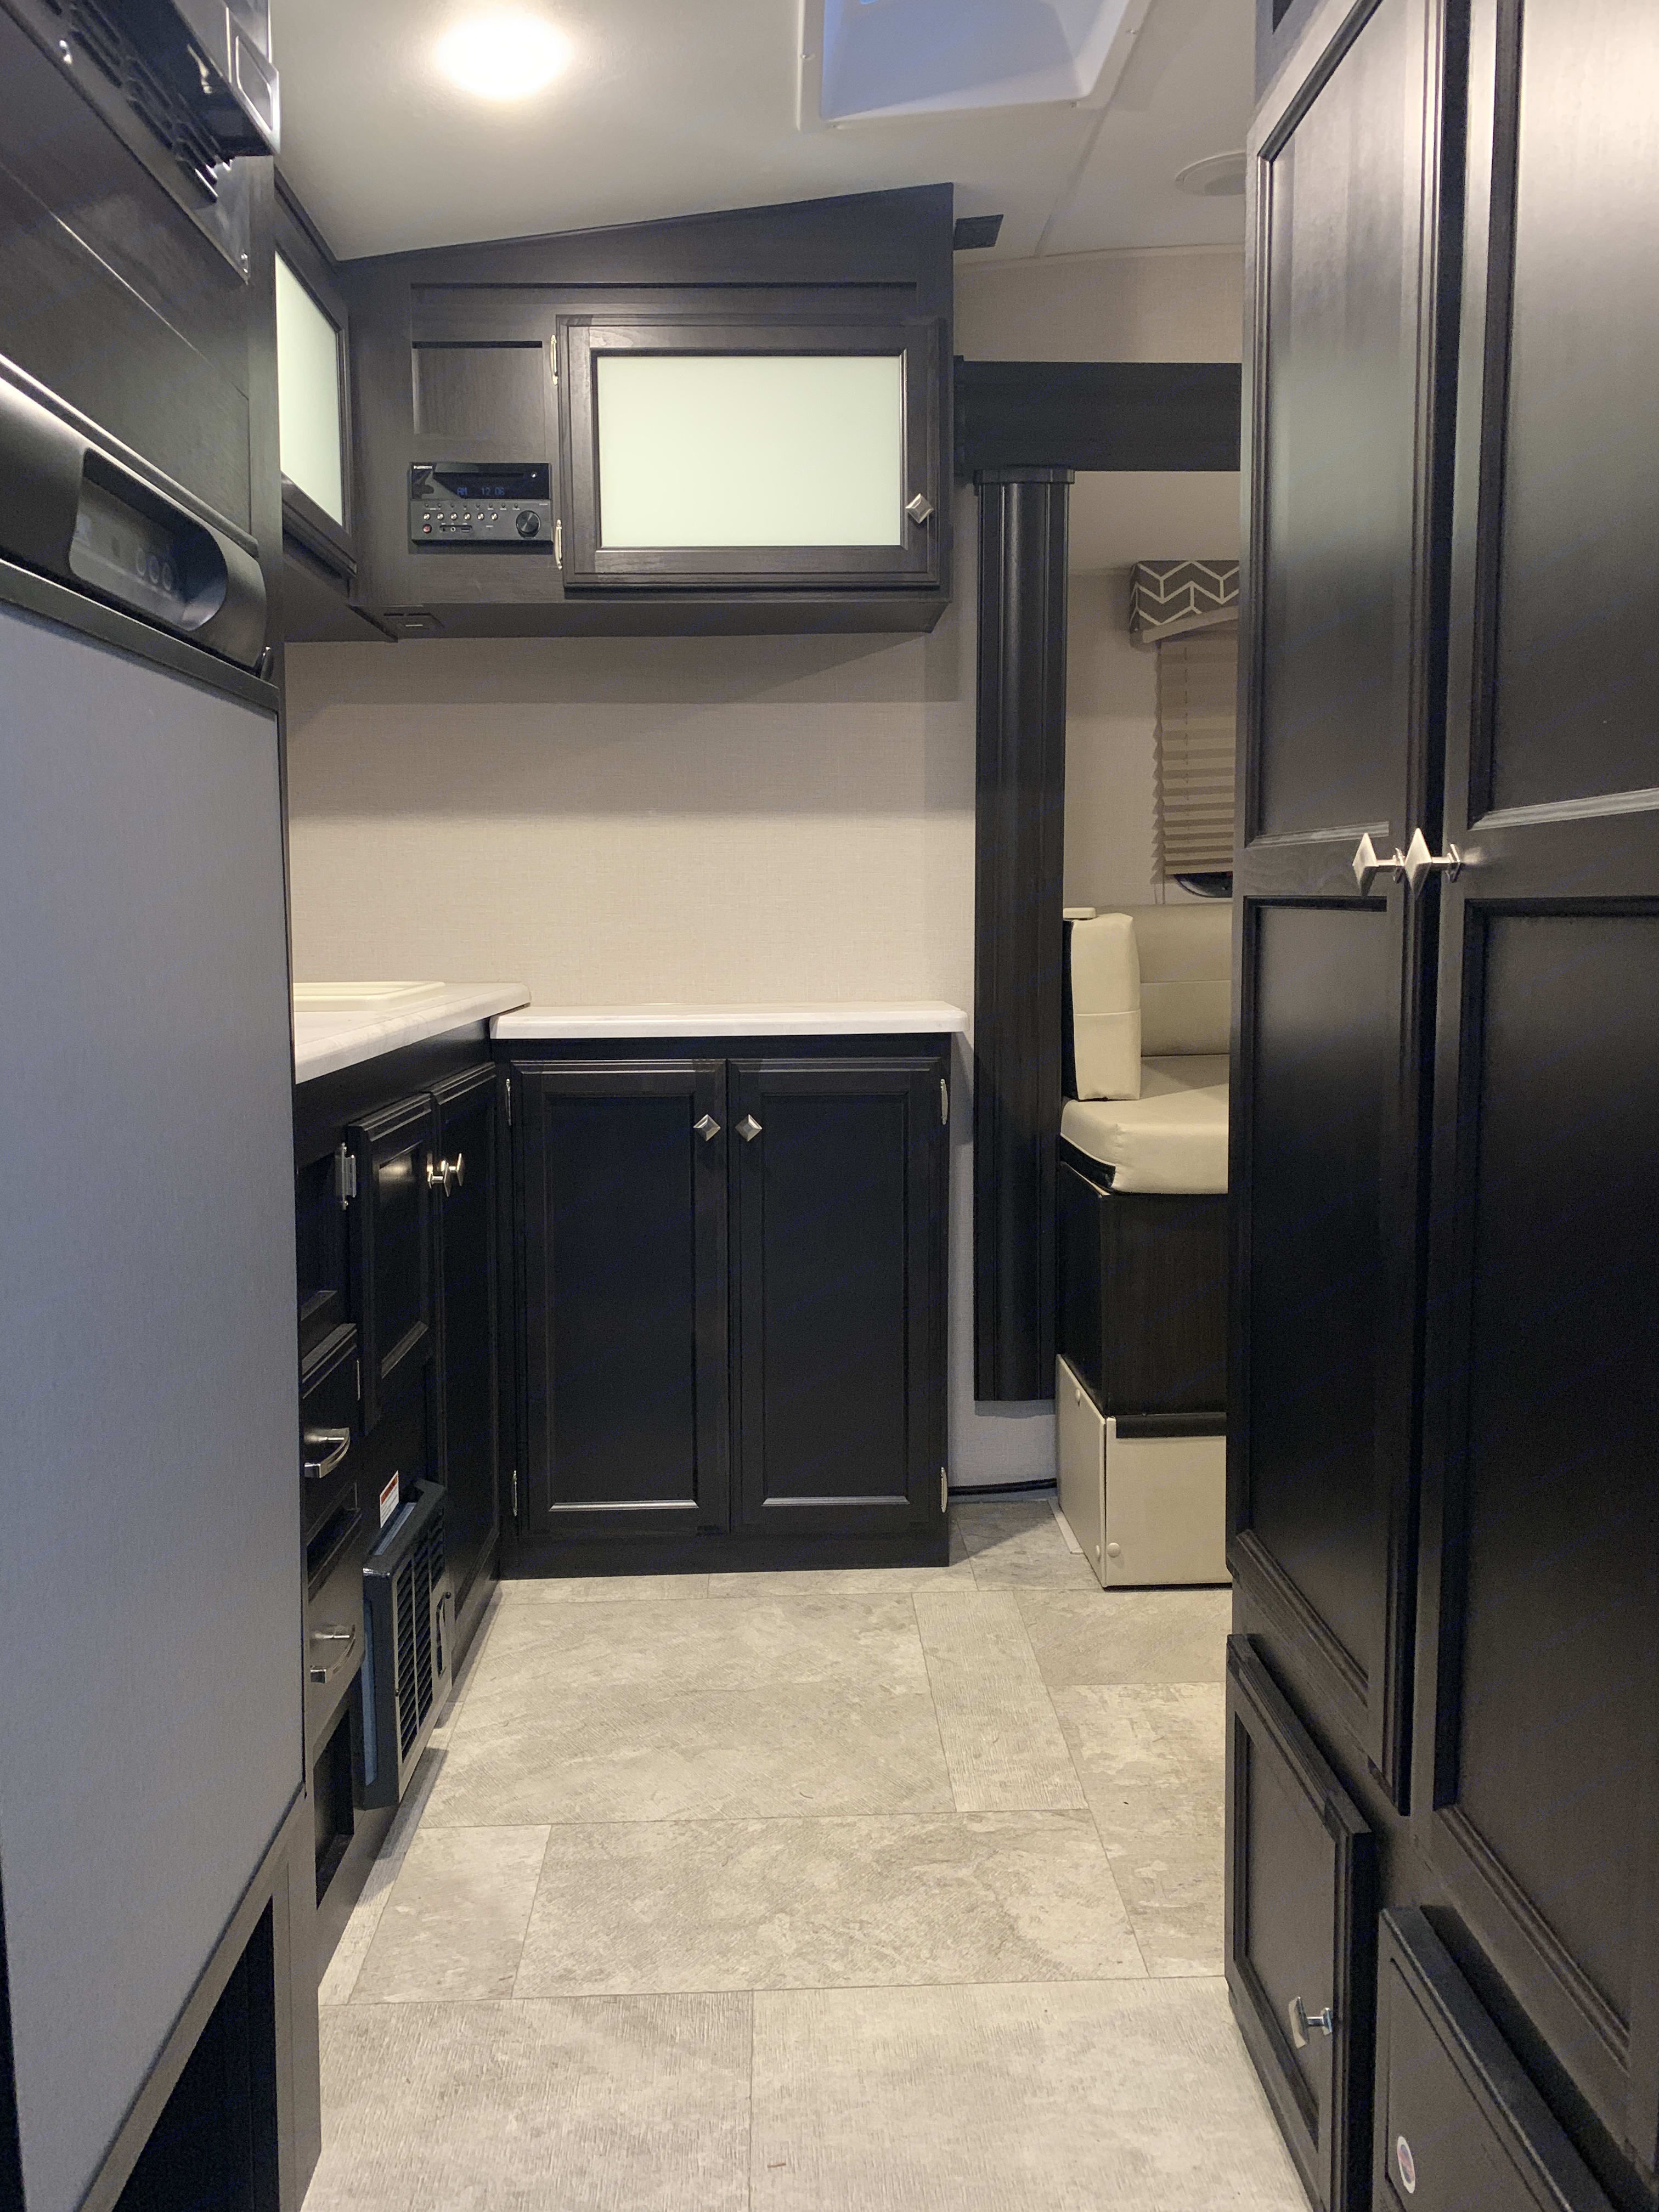 Walking into camper, immediate left is refrigerator, right is closet and pantry, ahead is wrap around cabinets and countertops.. Venture Rv Sonic 2019